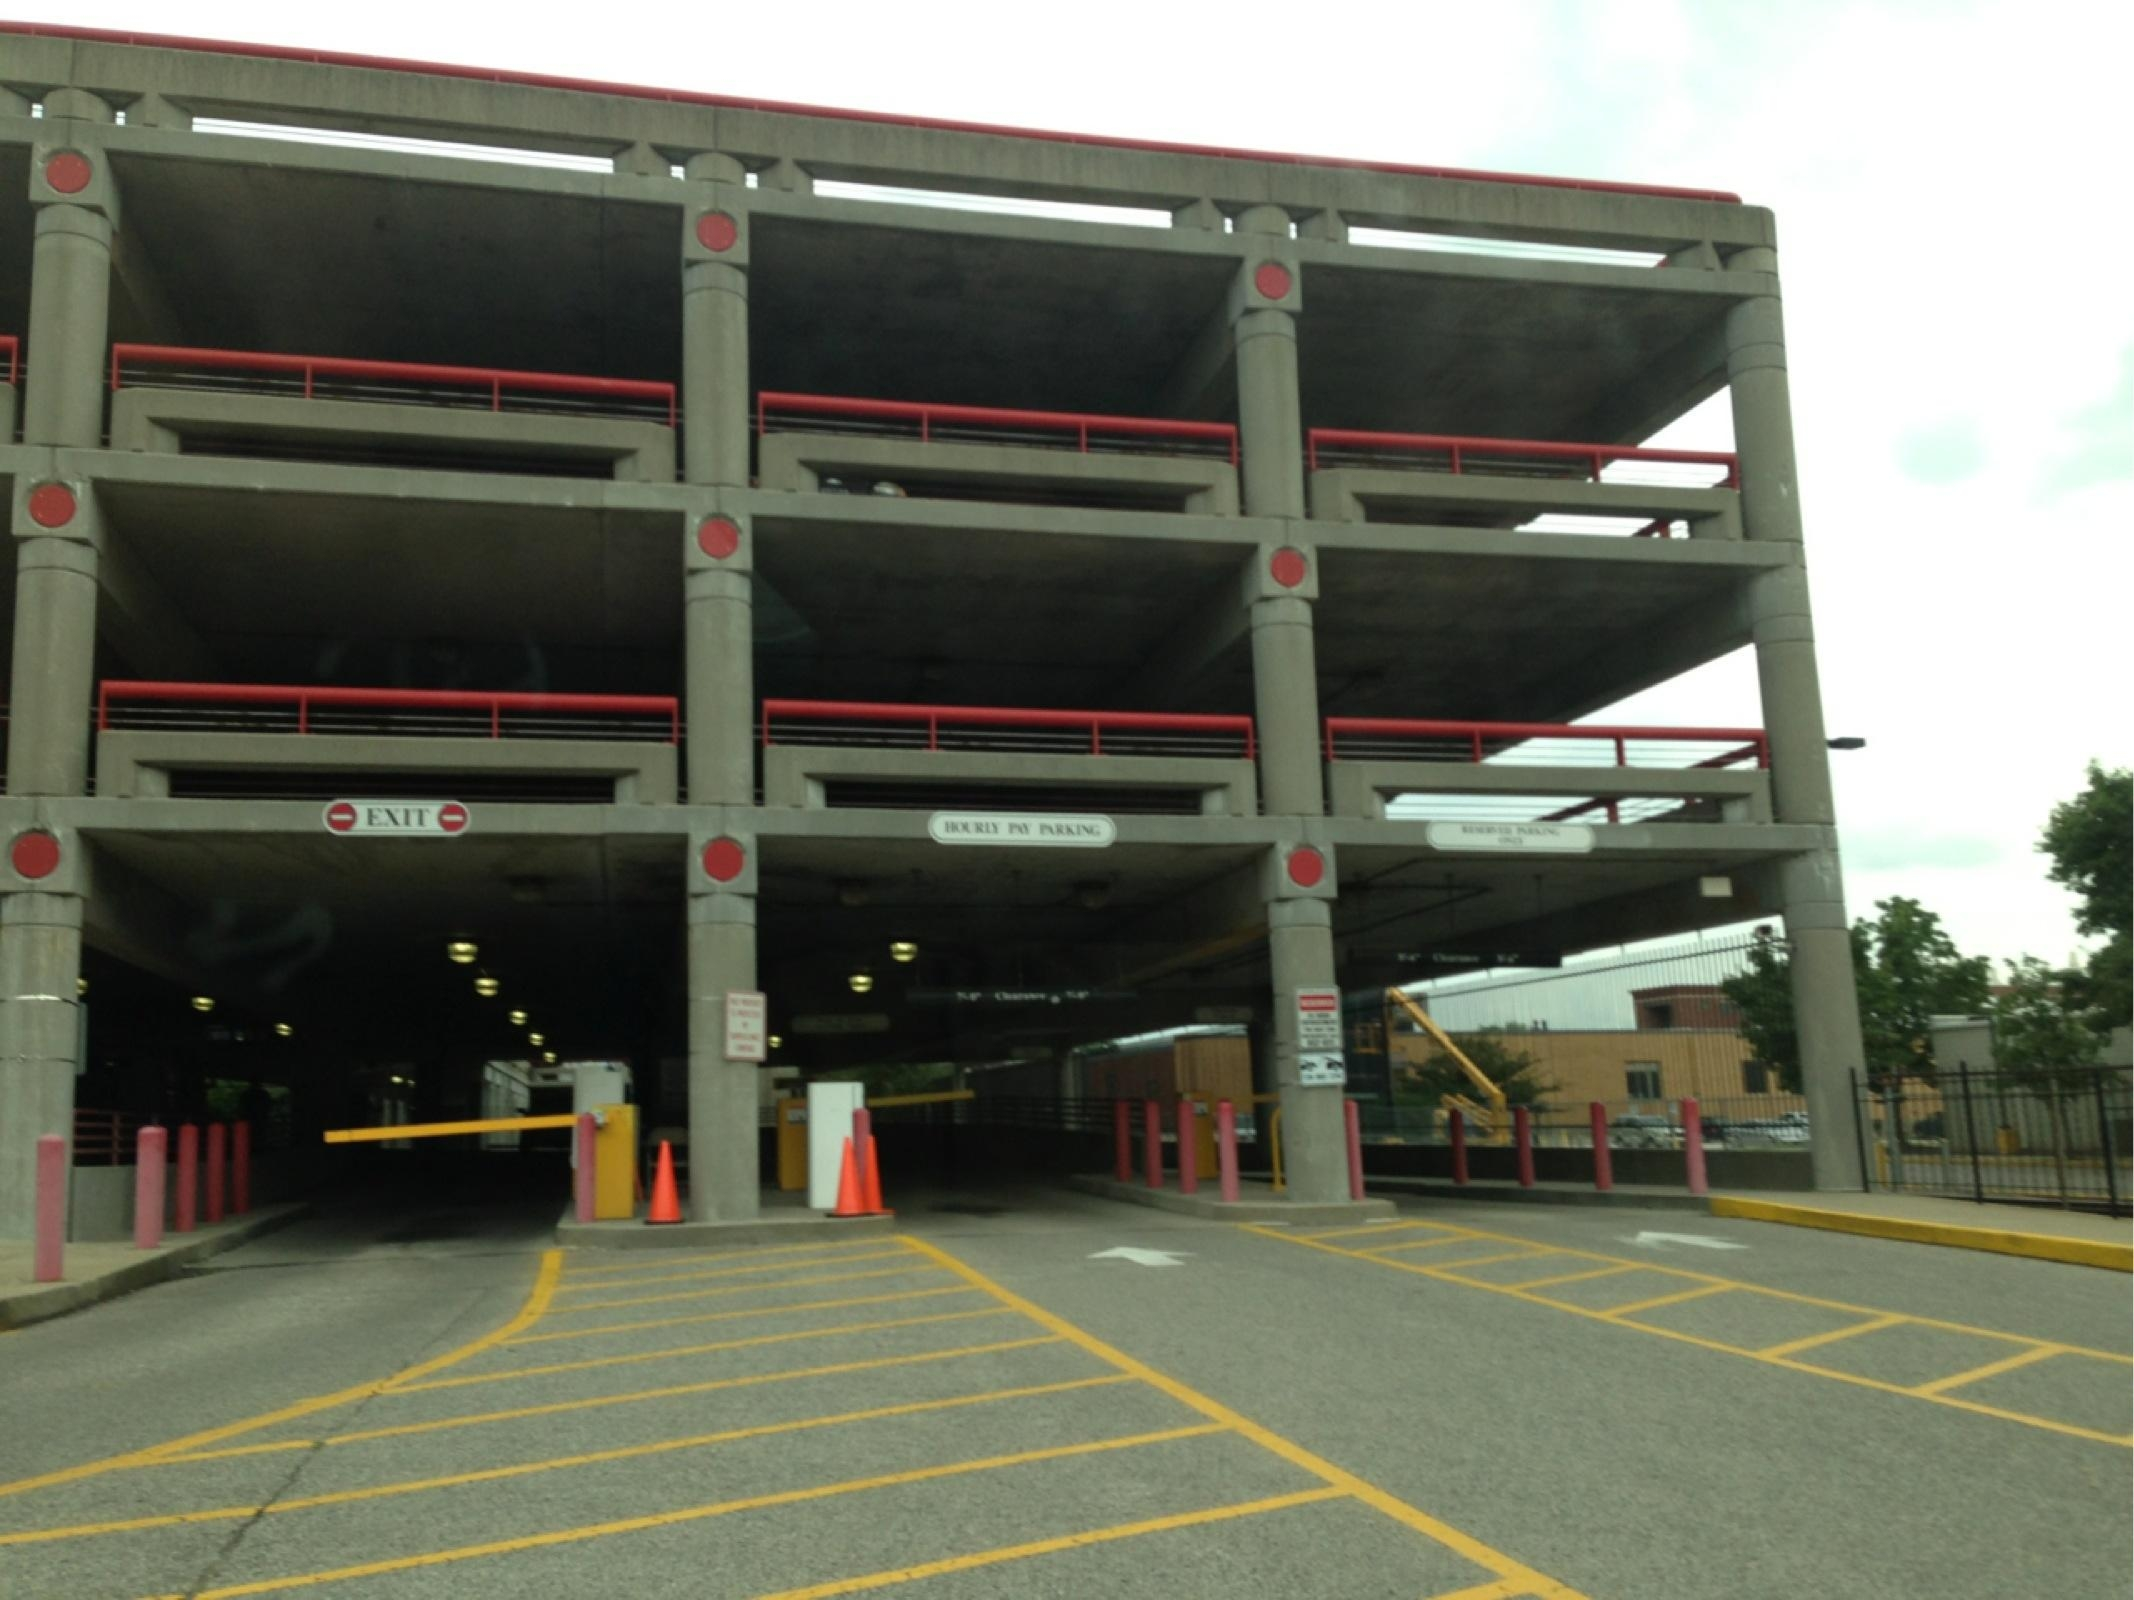 2118 2198 S Floyd St Garage Parking In Louisville Parkme